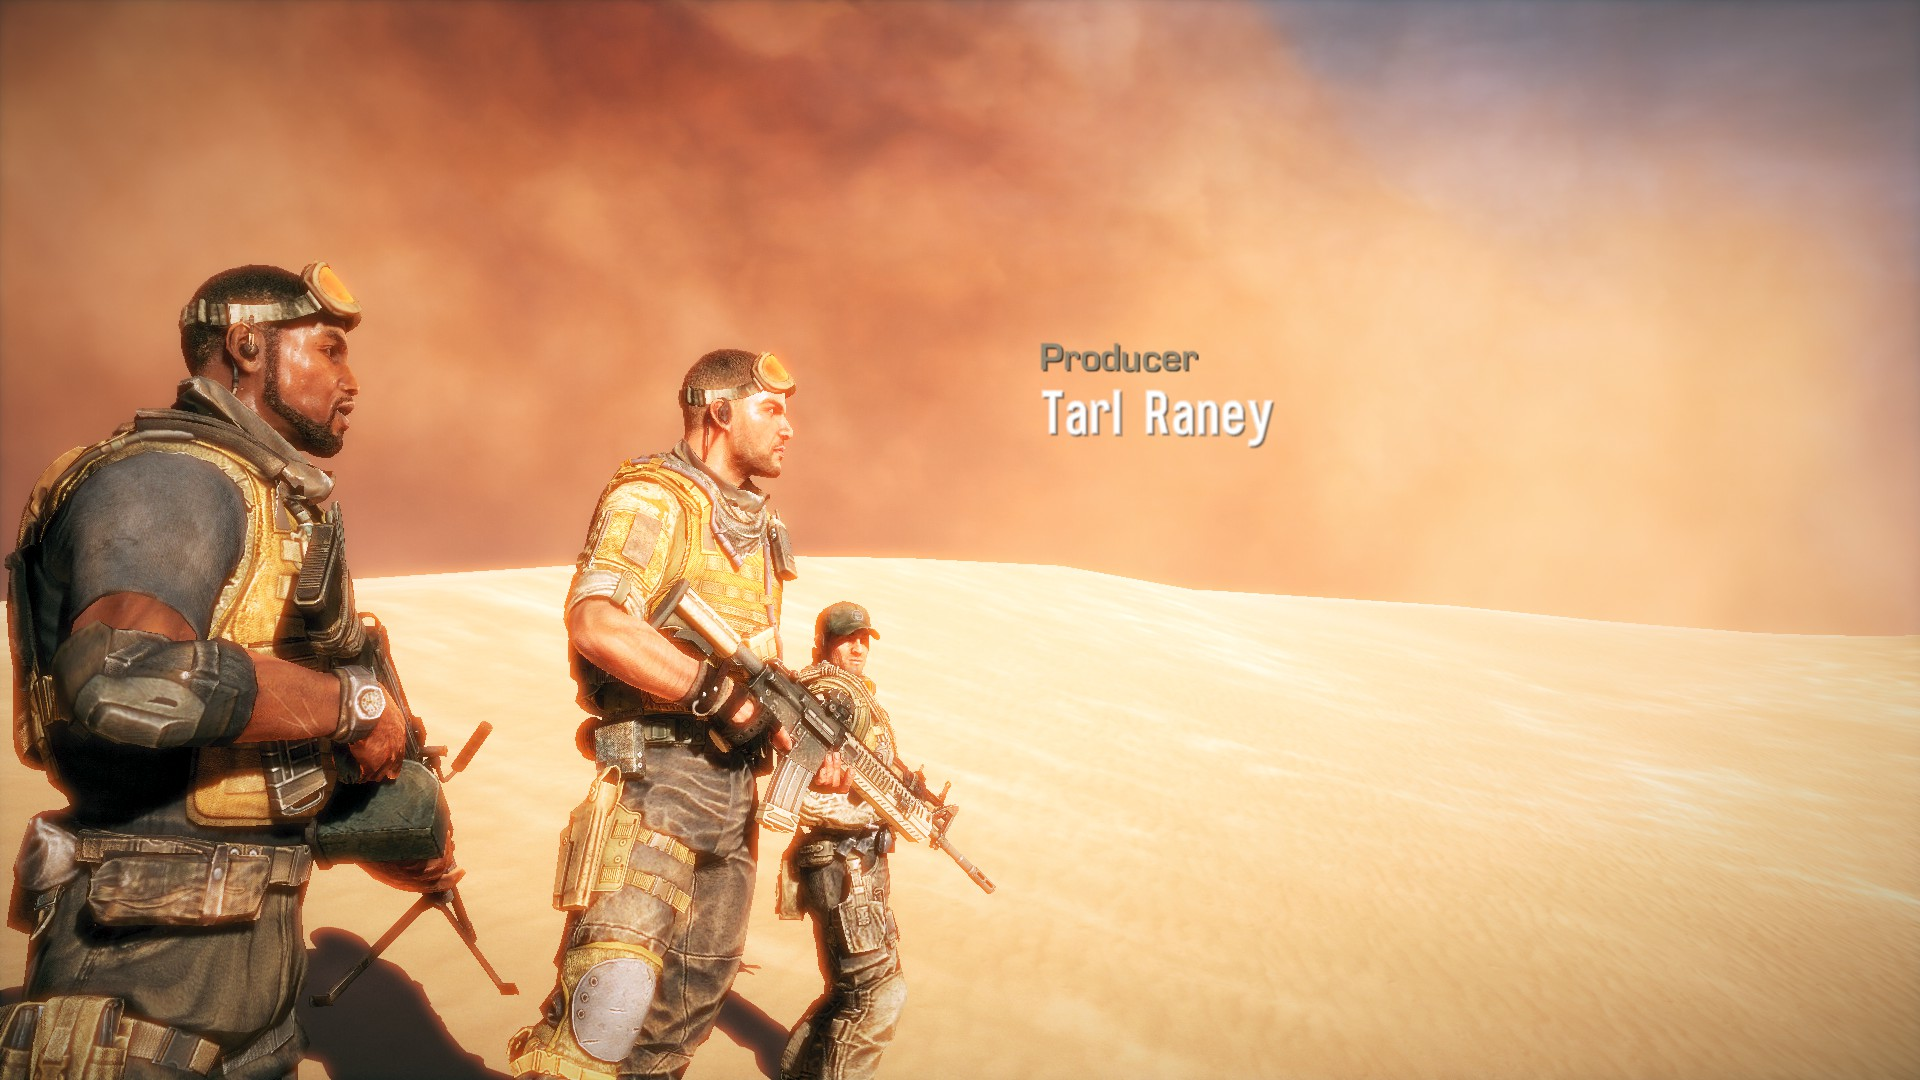 Spec Ops The Line The Writer S Block